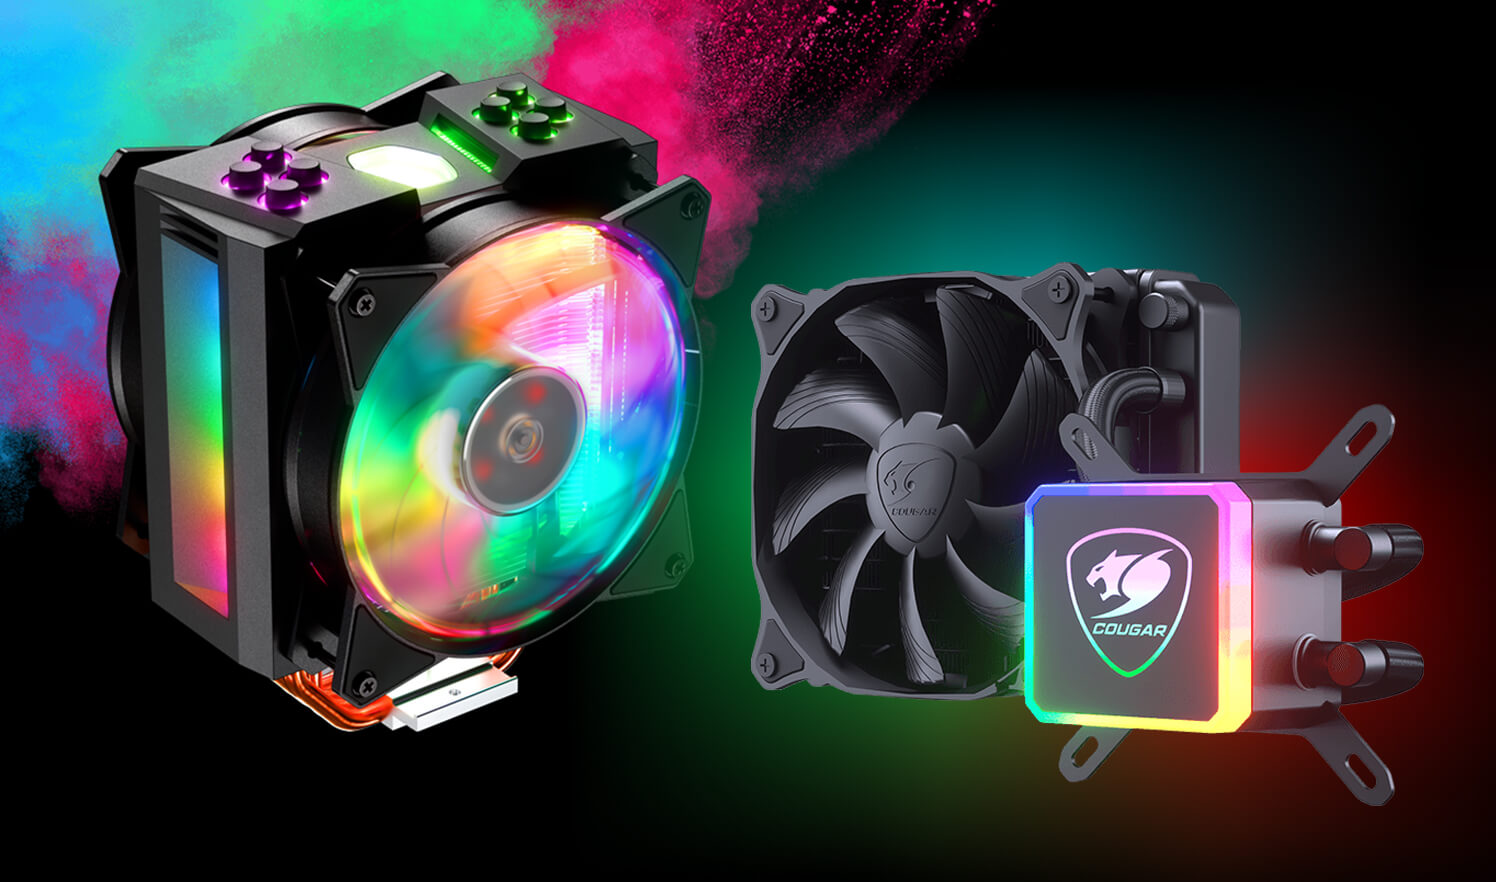 Tips for how to Pick the Right CPU Cooler for Your Computer